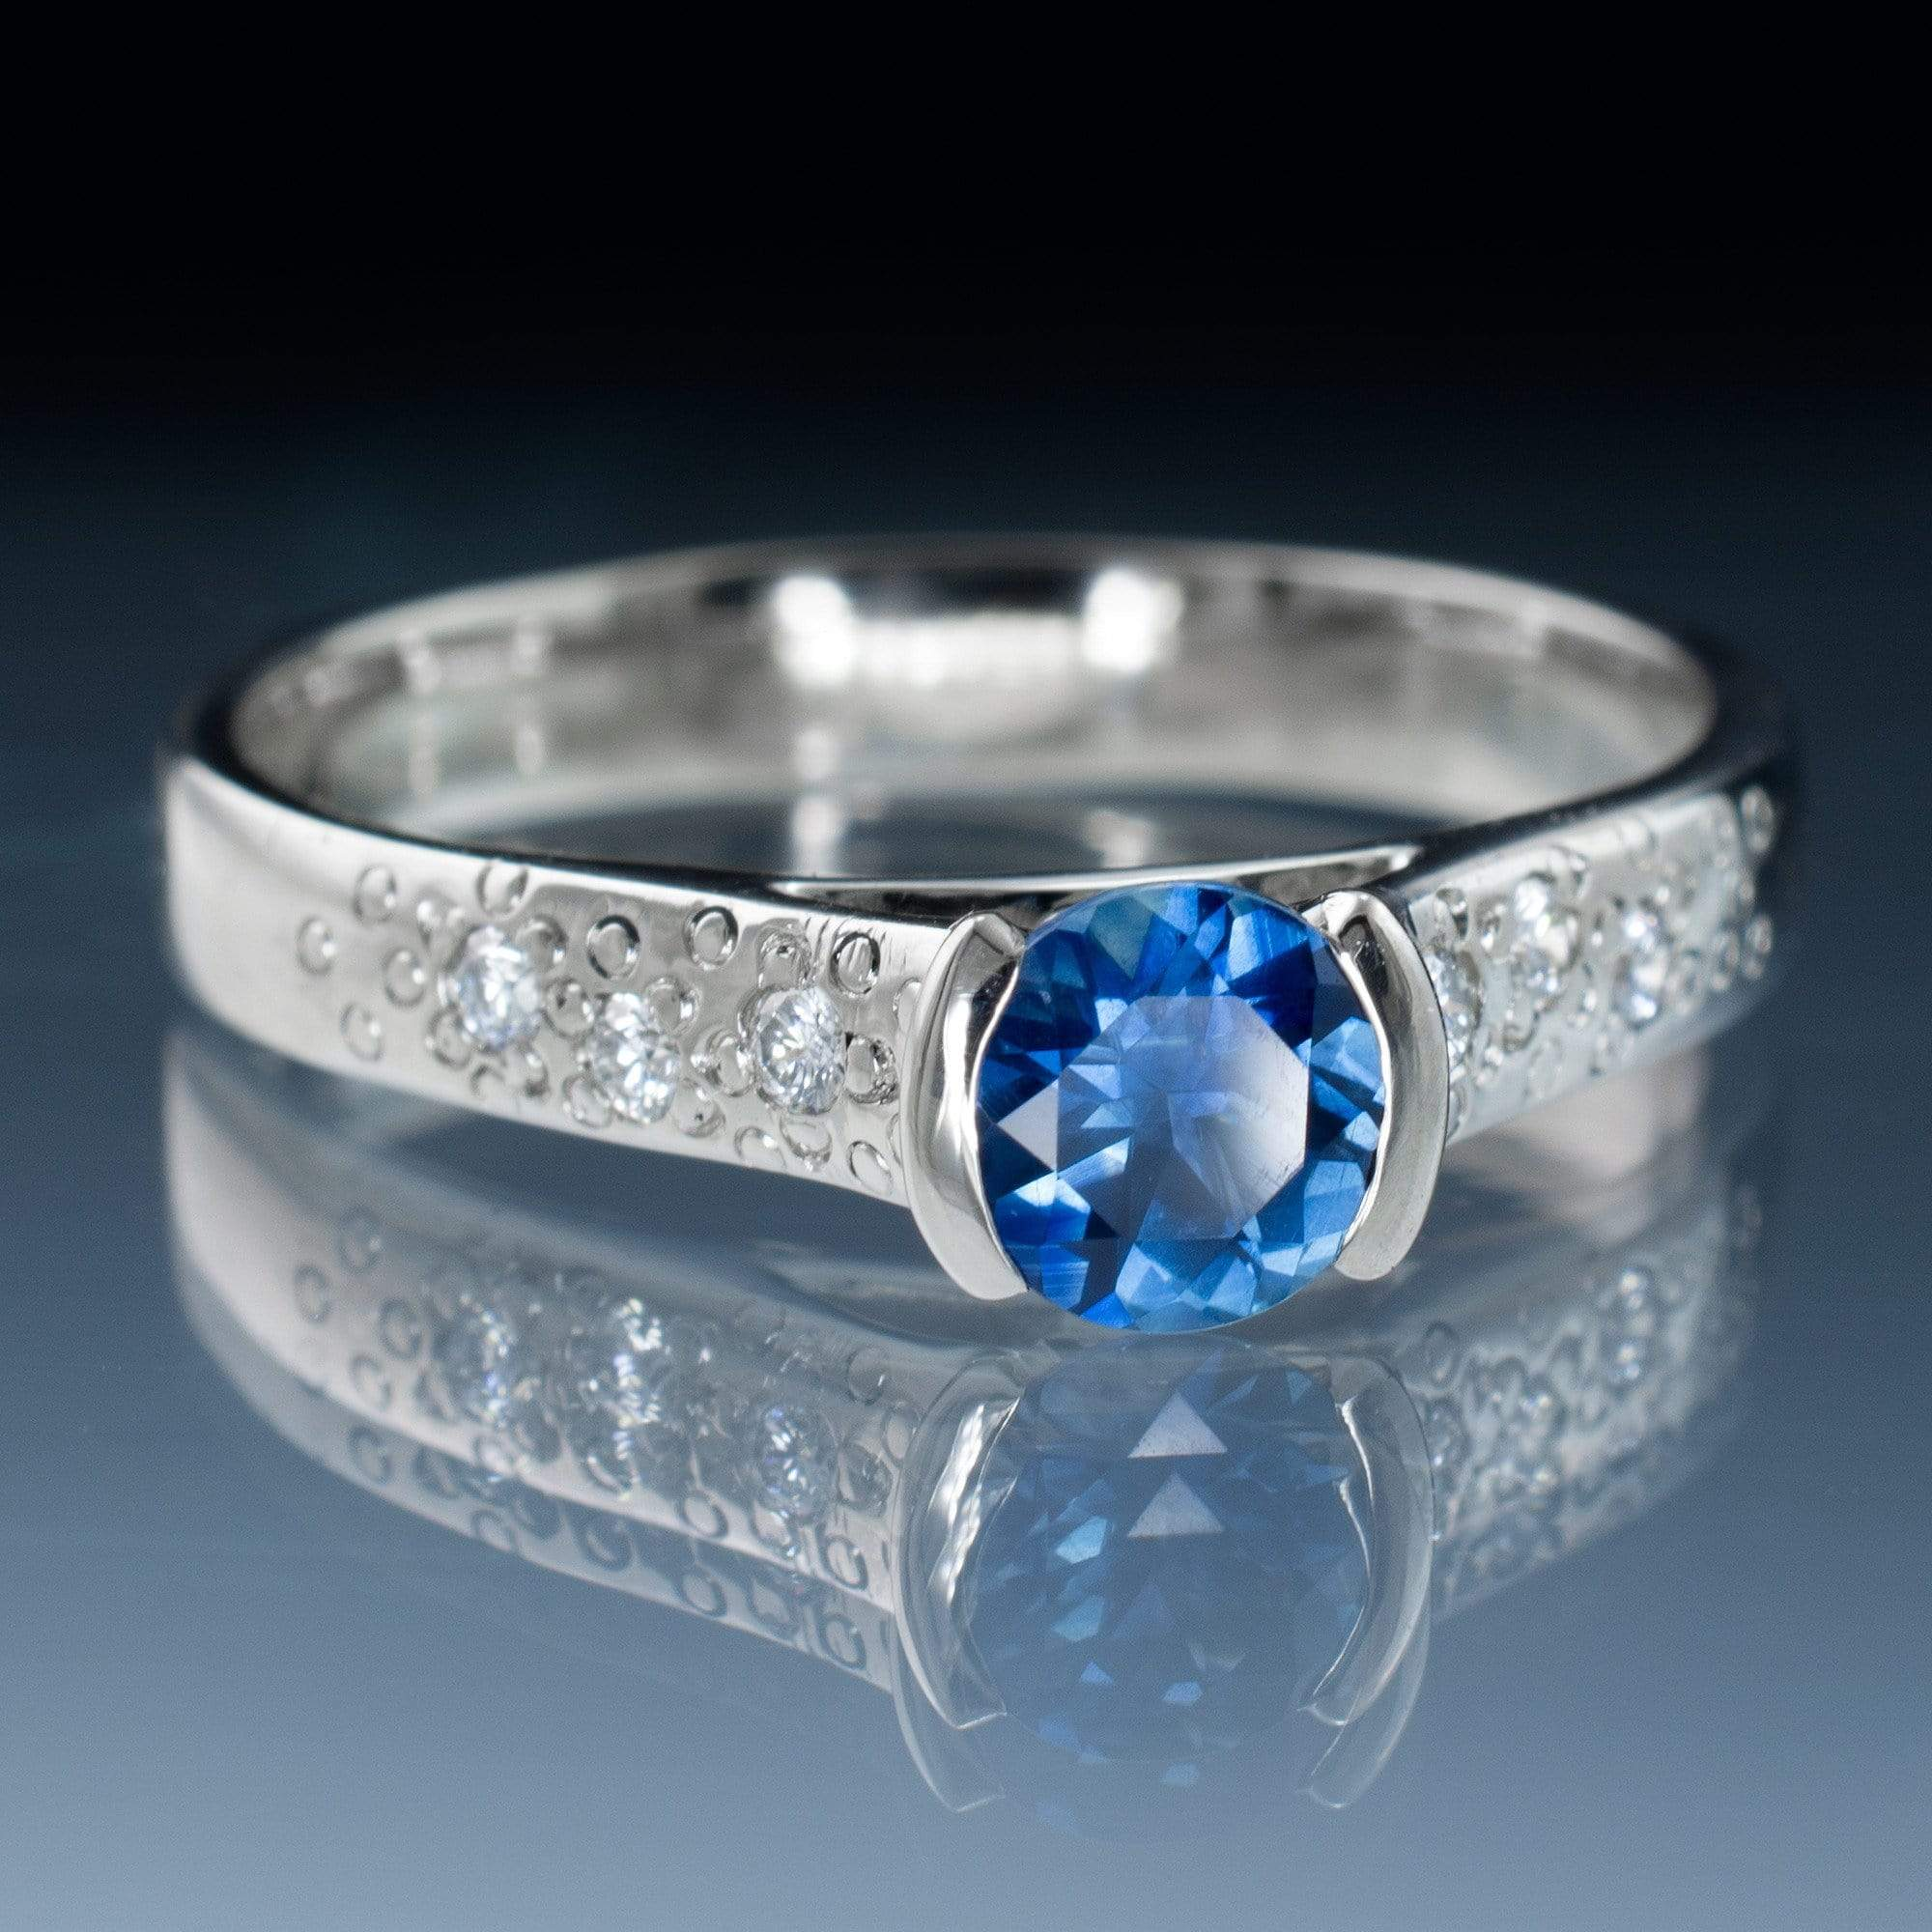 Fair Trade Blue / Teal Malawi Sapphire Half Bezel Diamond Star Dust Engagement Ring